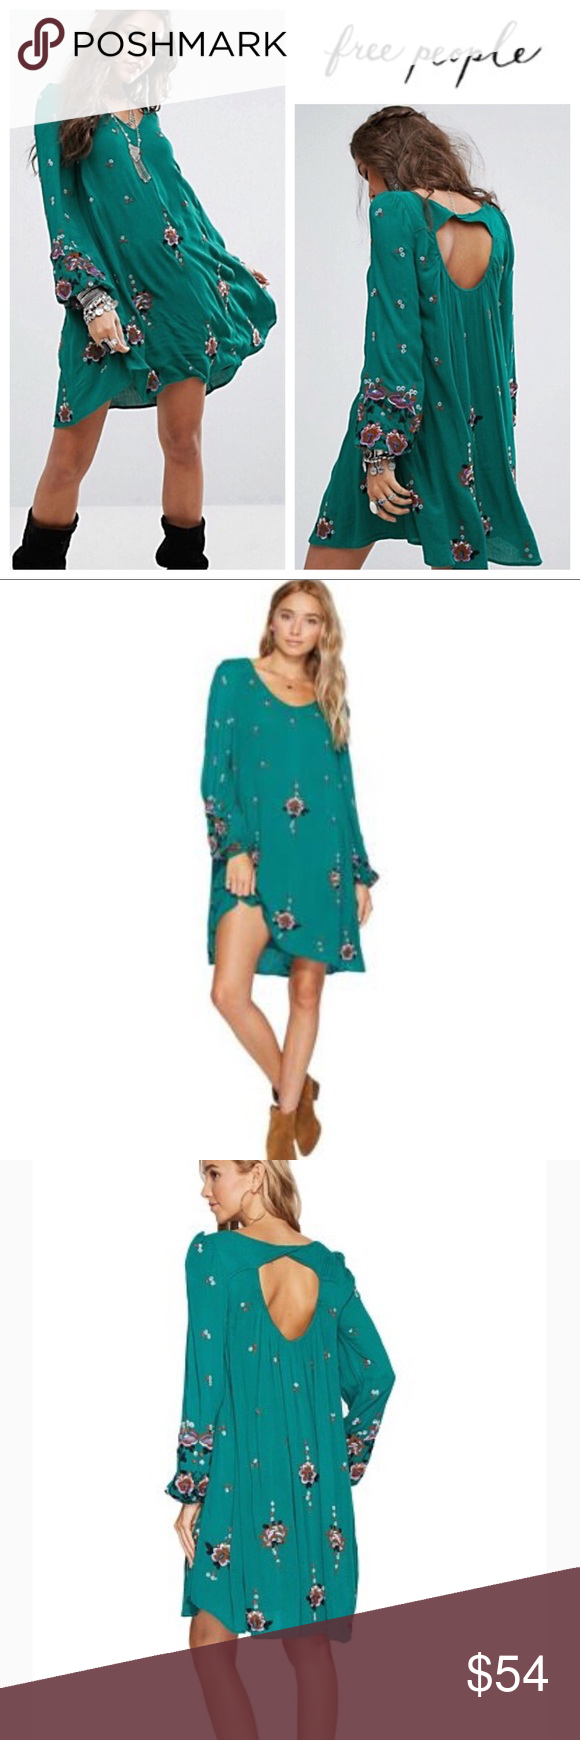 Free People Green Floral Embroidered Minidress Nwt Dance Until Dawn In This Oxford Mini